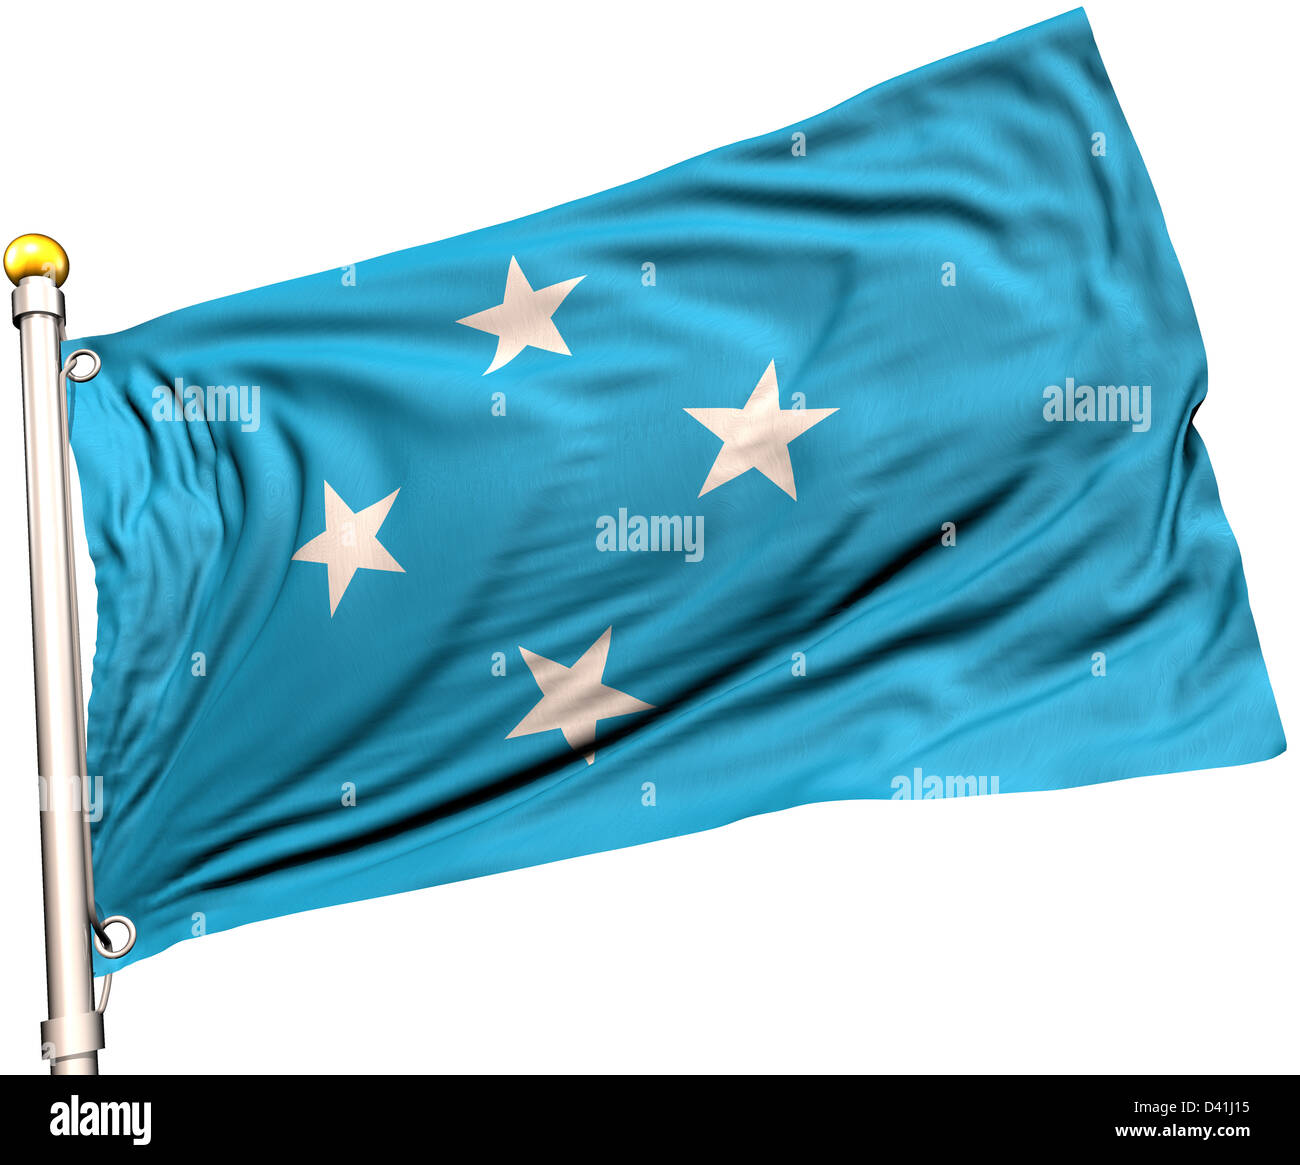 Micronesia flag on a flag pole. Clipping path included. Silk texture visible on the flag at 100%. - Stock Image